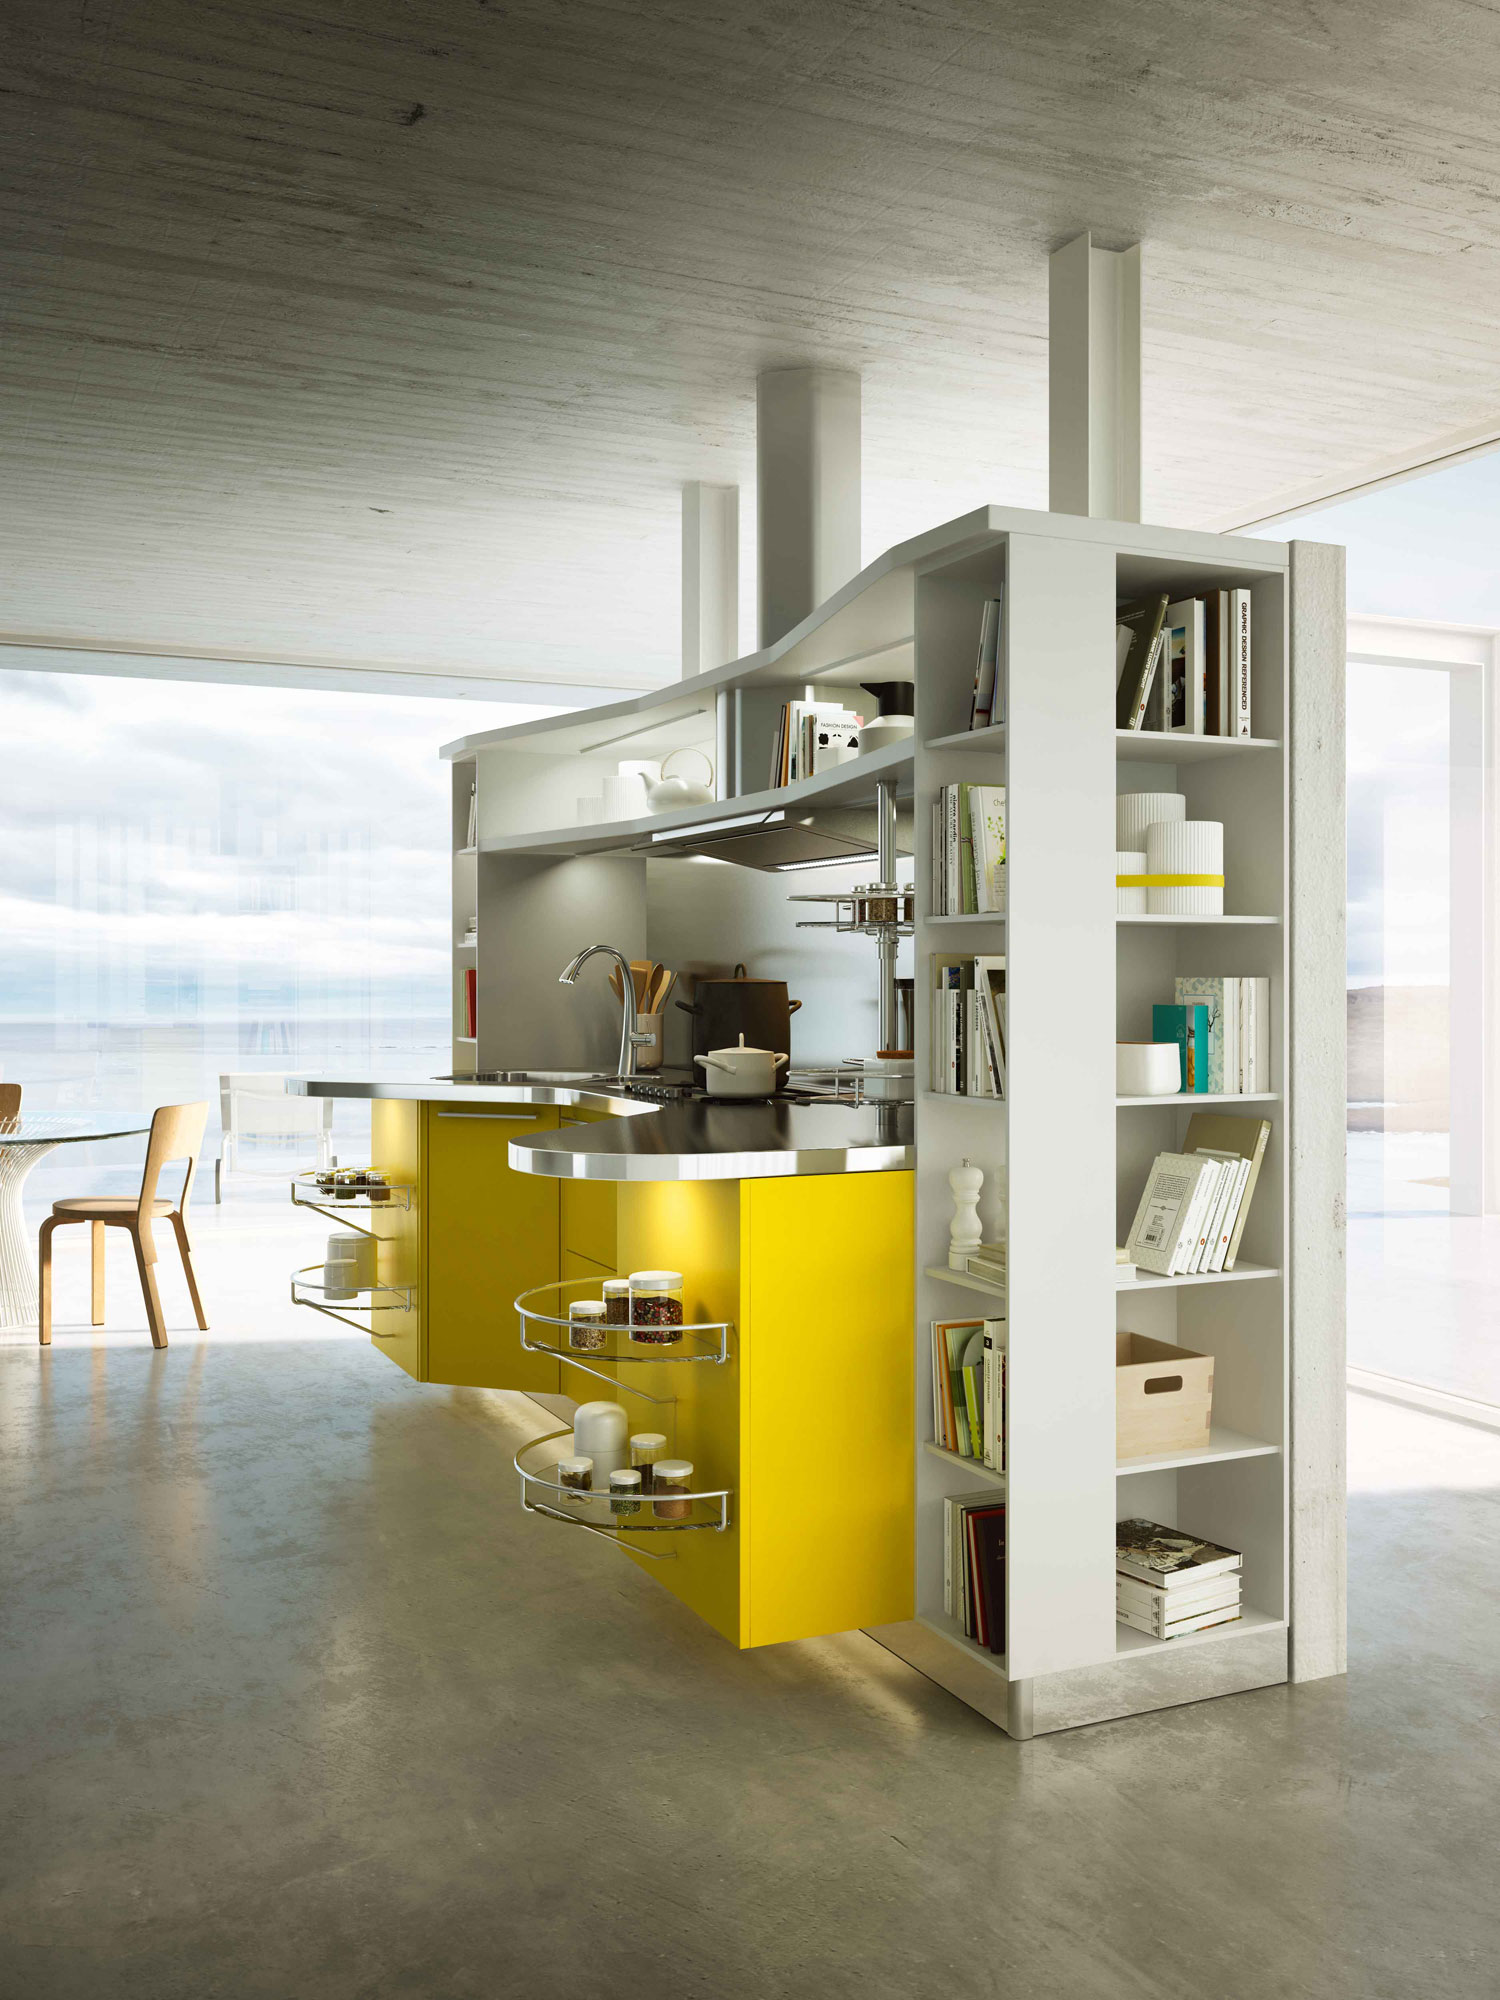 10 Kitchen And Home Decor Items Every 20 Something Needs: Modern Italian Kitchens From Snaidero